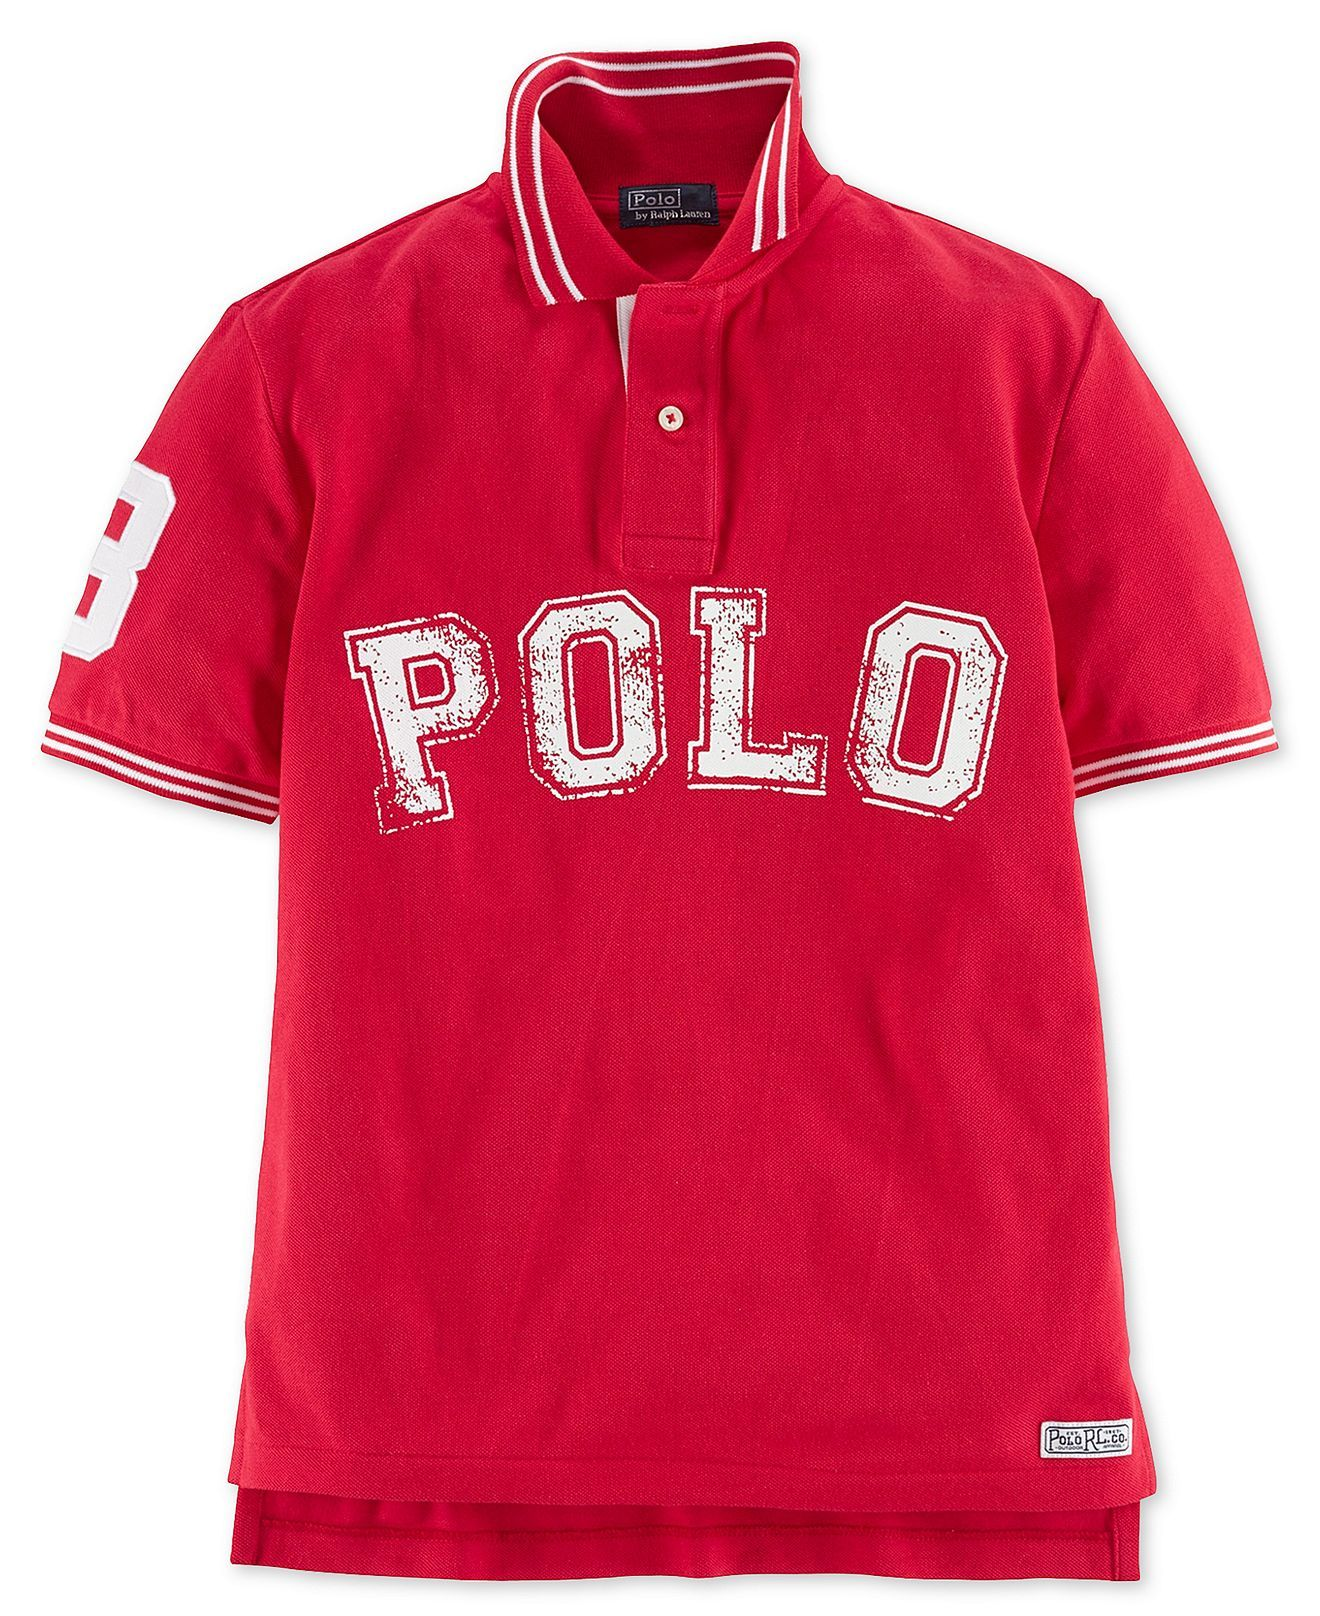 3T, 5 NWT $55 Ralph Lauren USA Olympic Team Red or Blue Polo Top Shirt